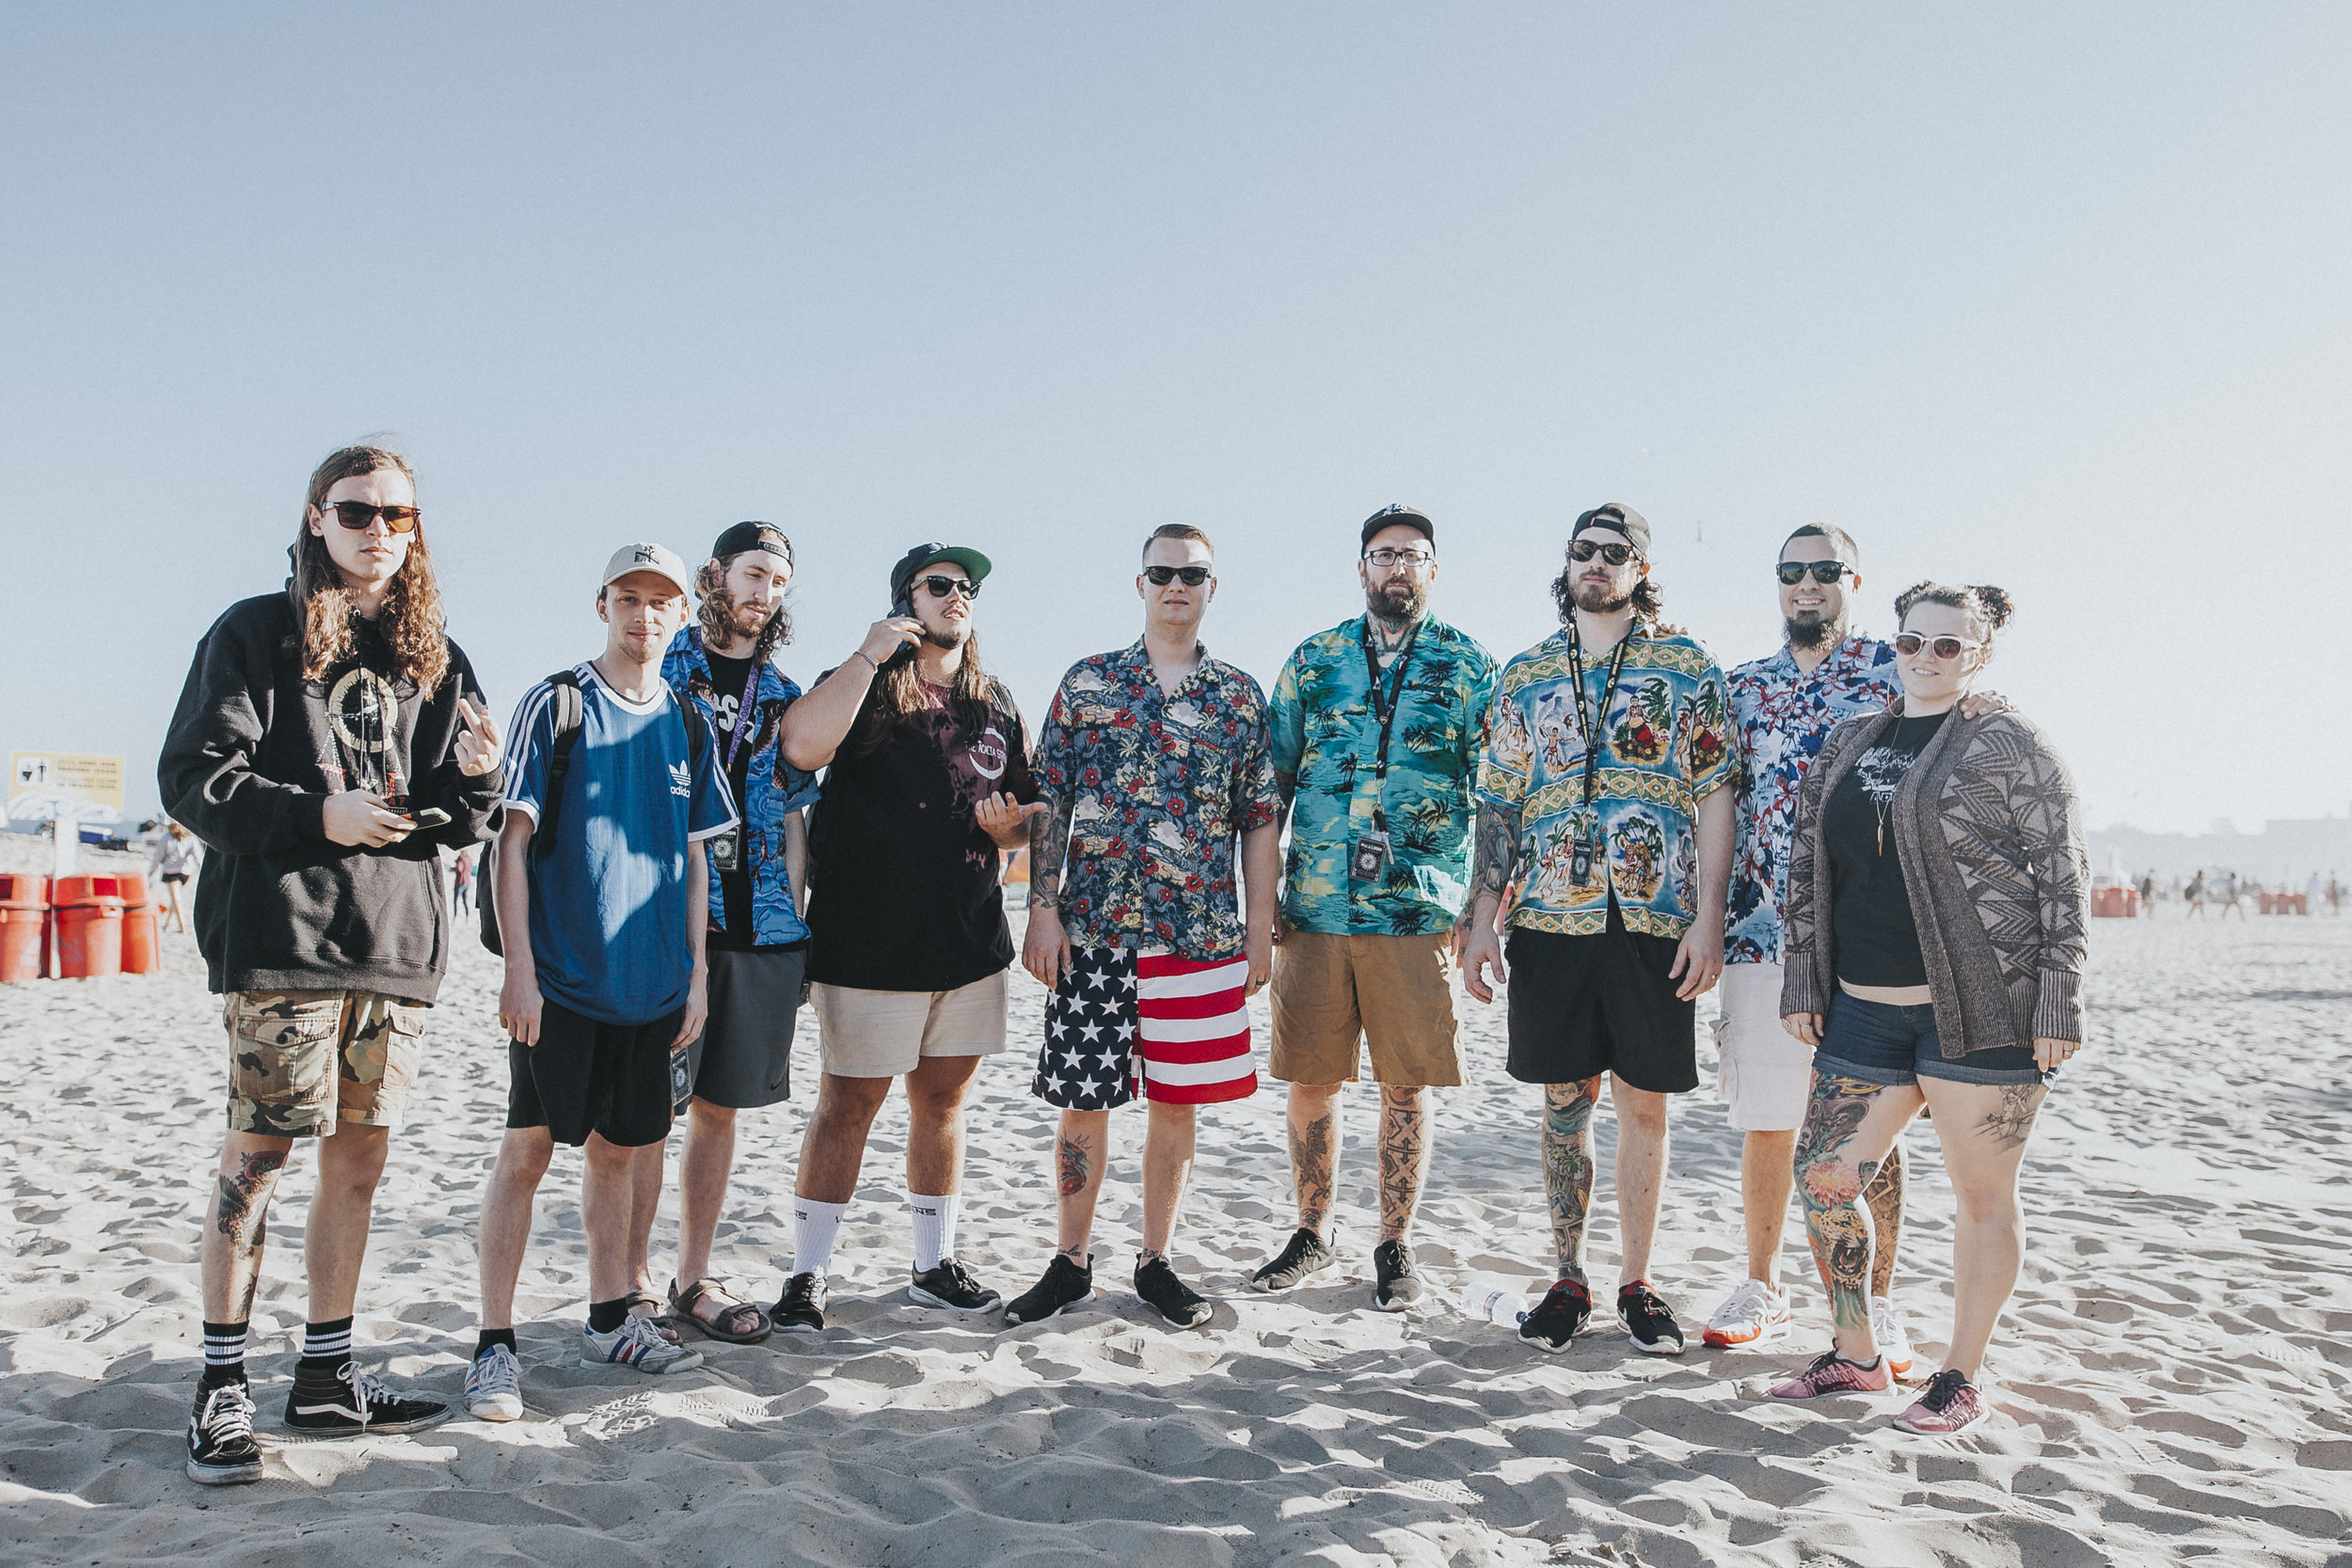 Offcial Squad Picture Boardwalk.jpg